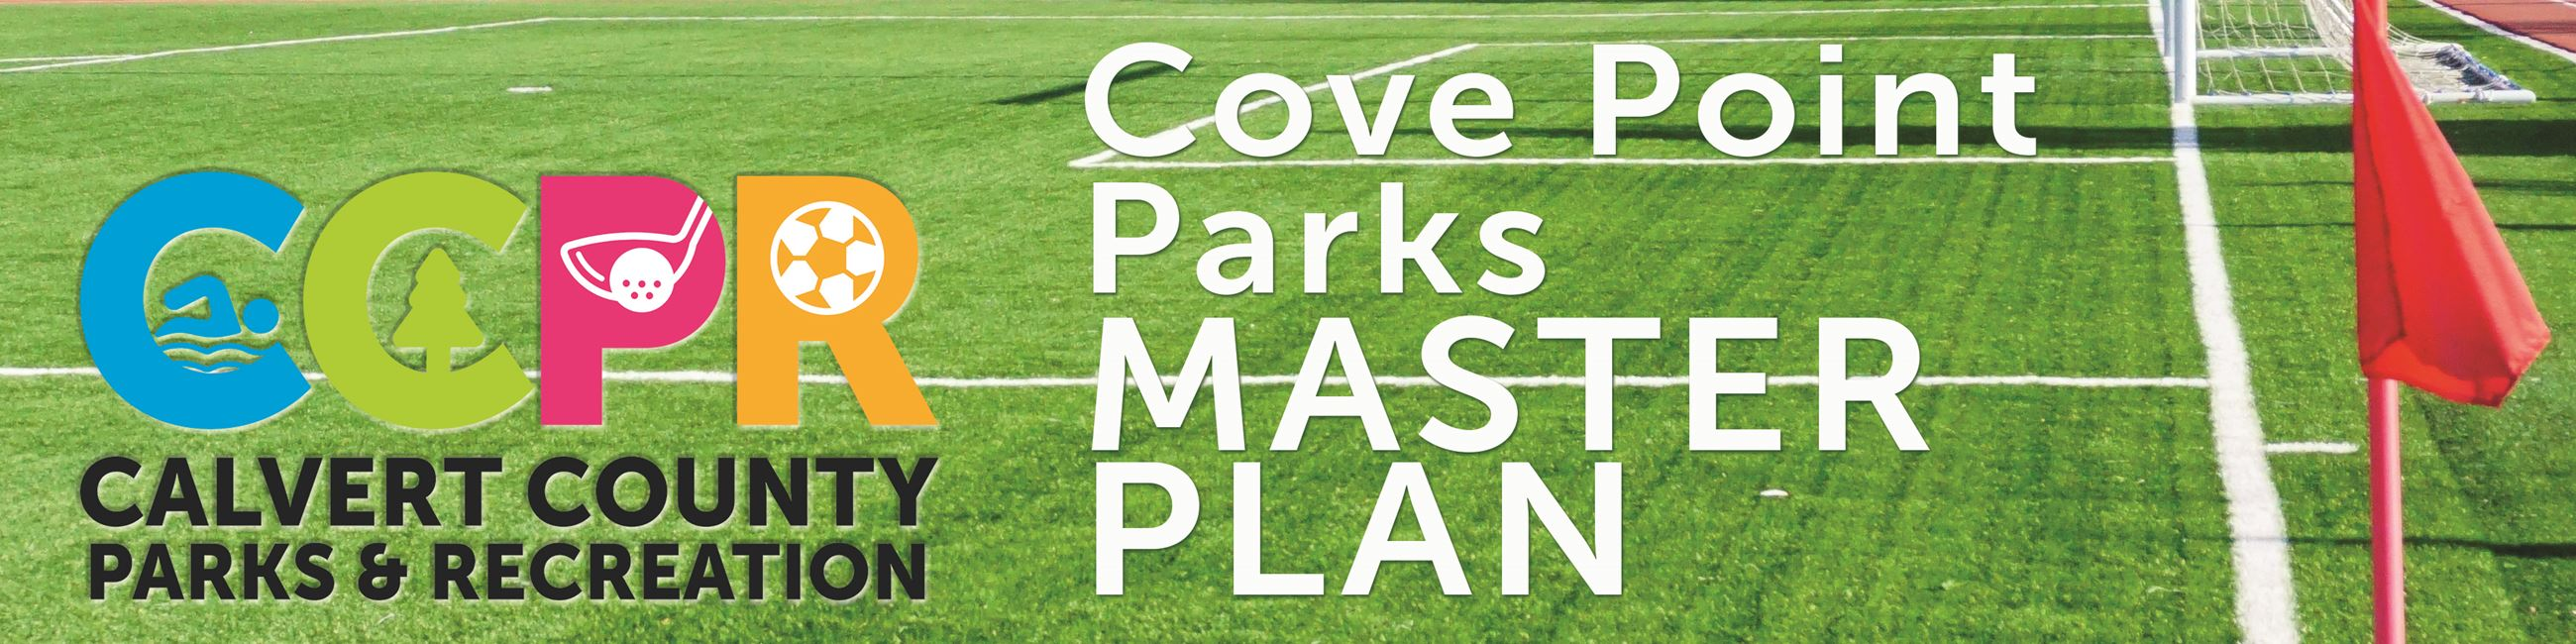 Cove Point Parks Master Plans